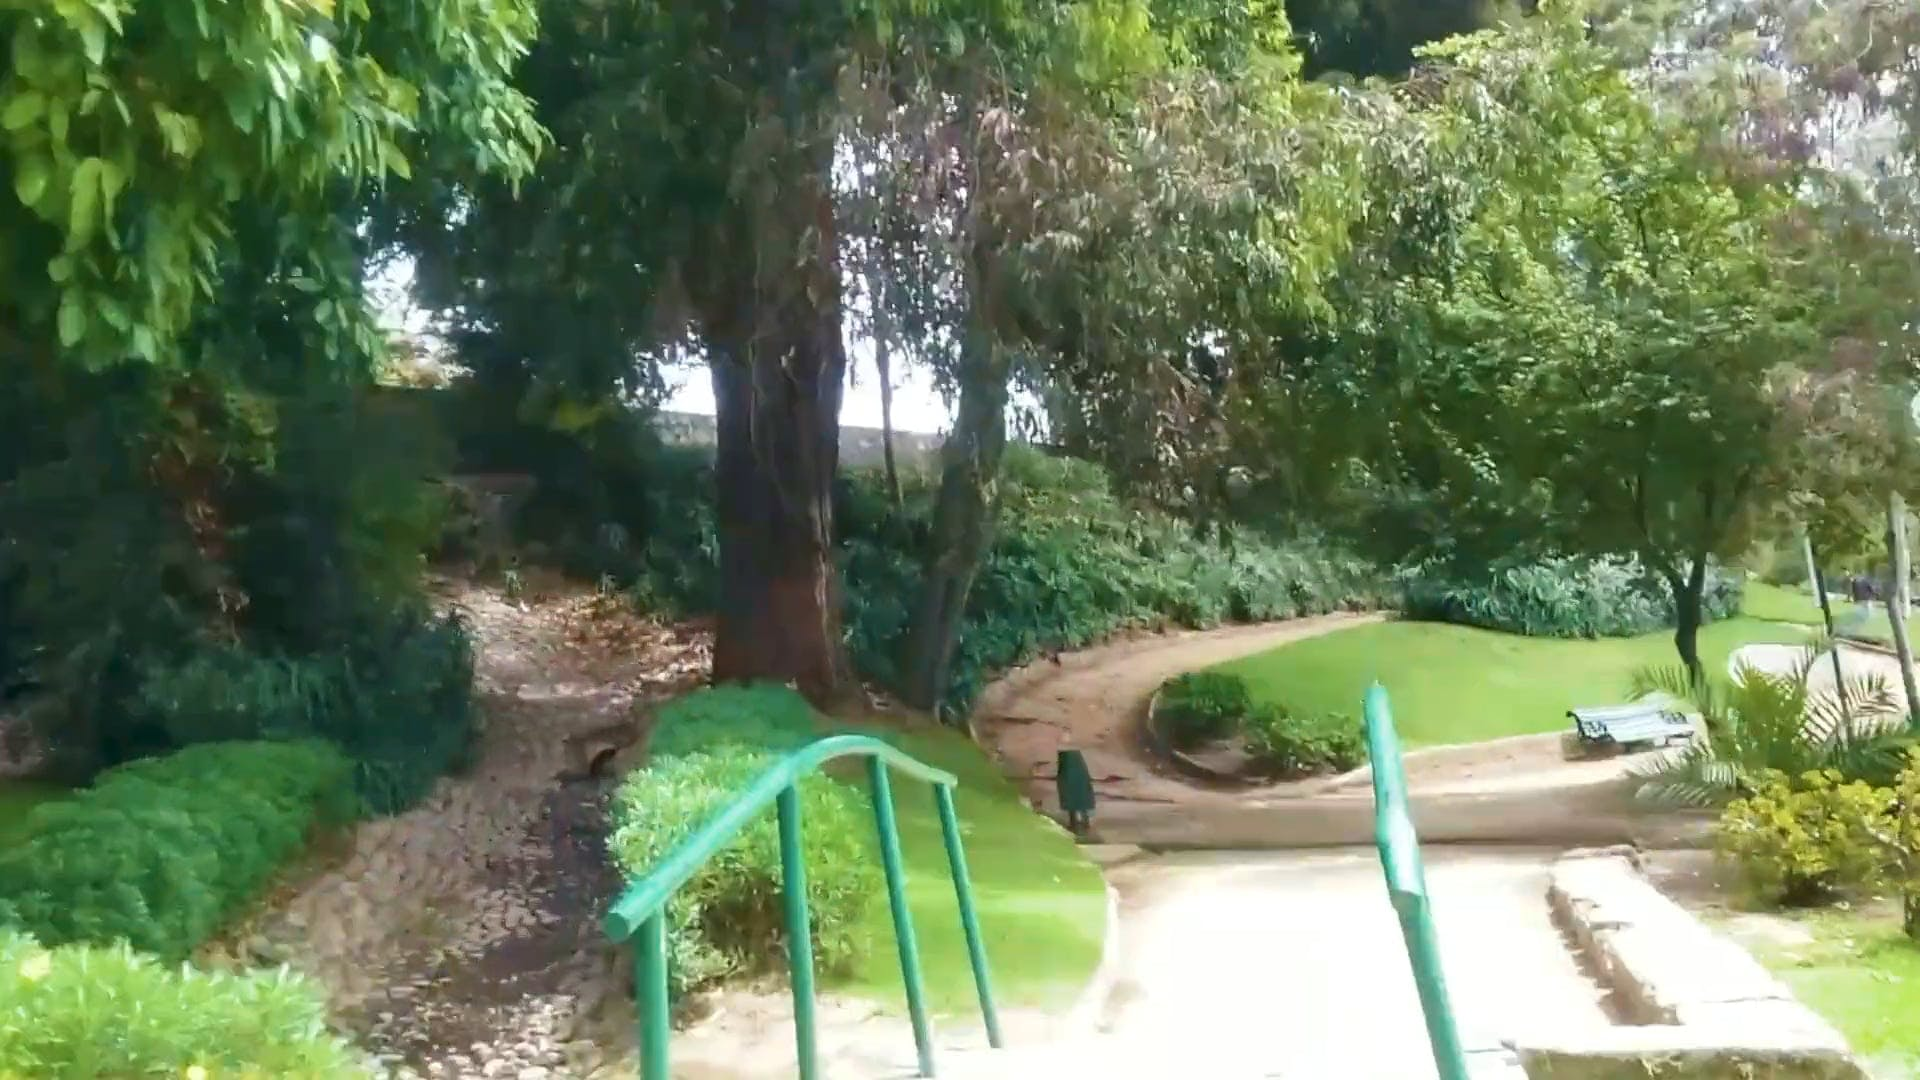 Video Of A Beautiful Park In Timelapse Mode